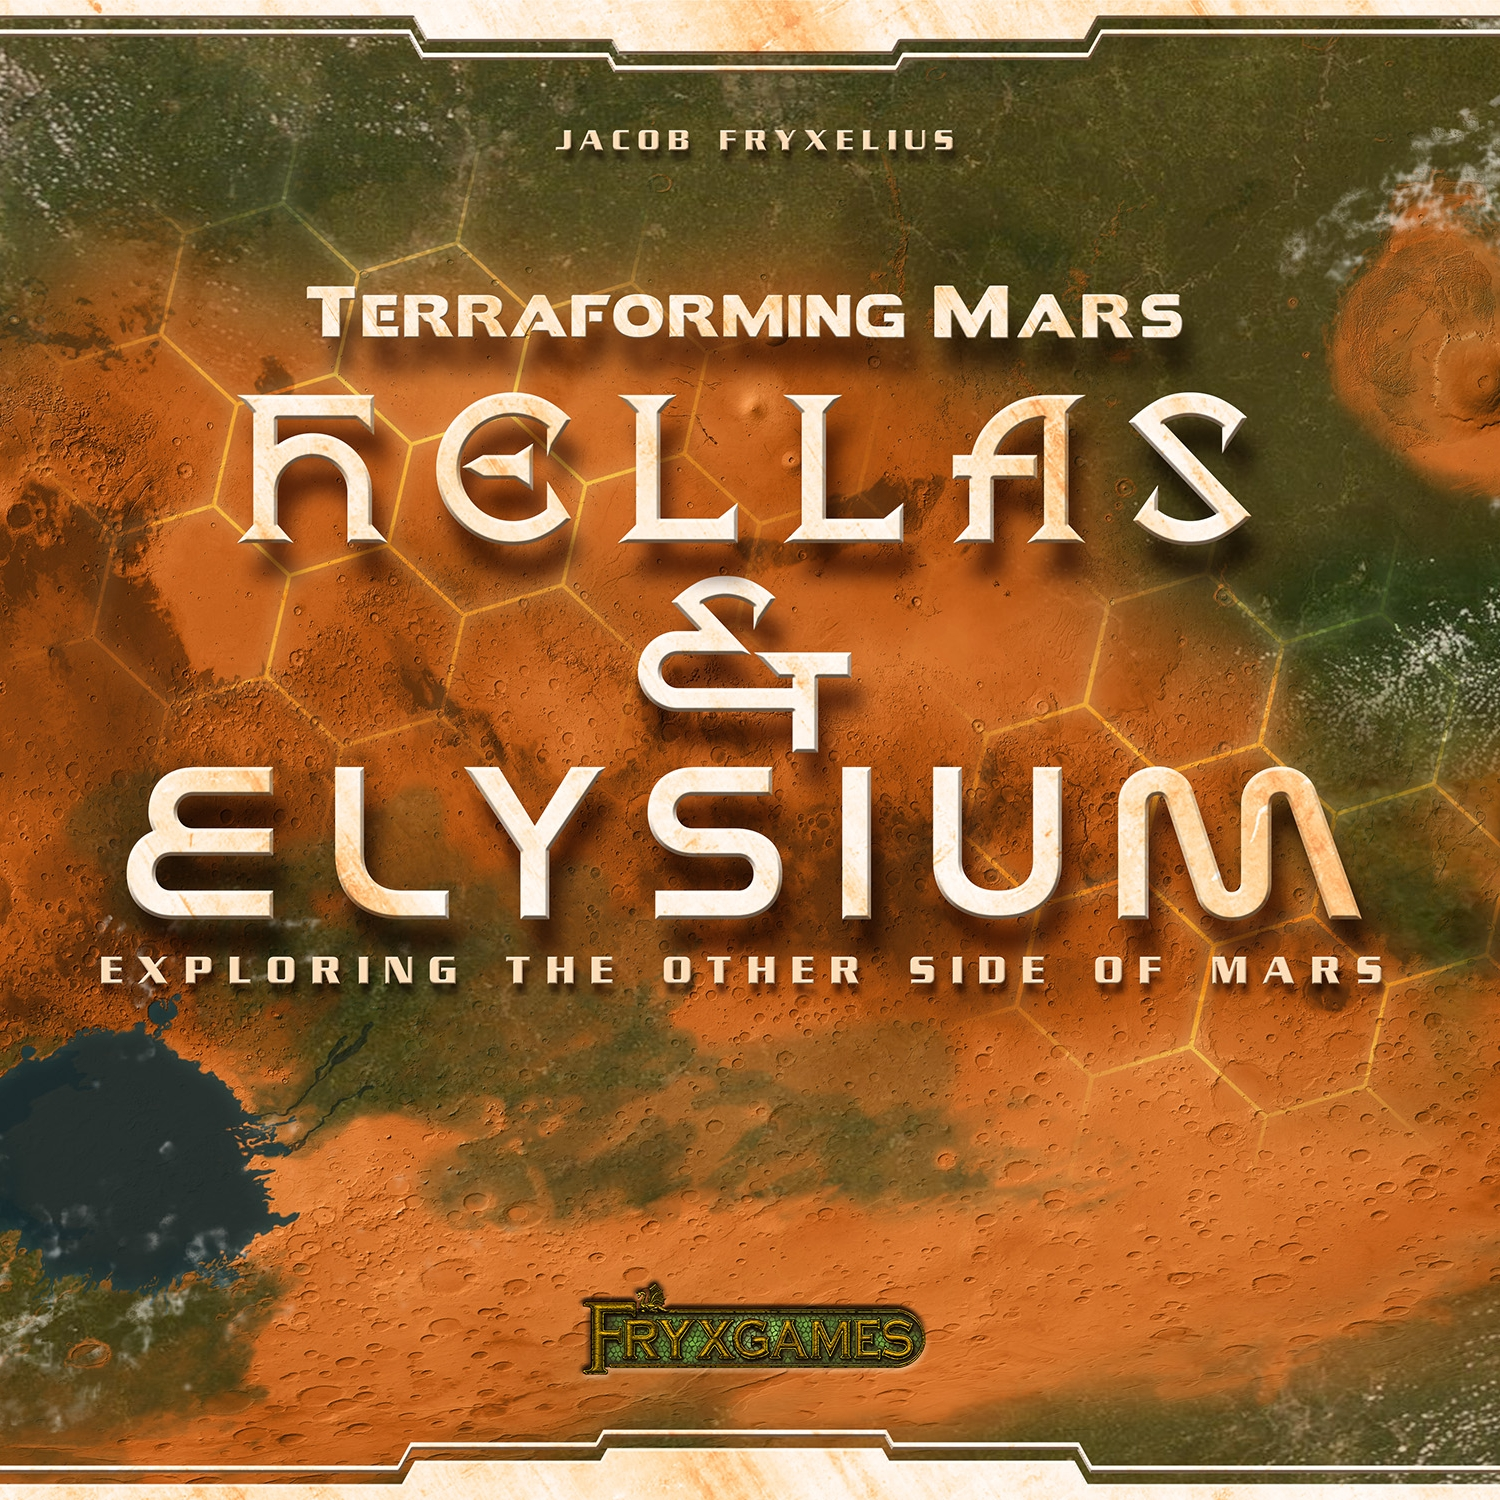 Terraforming Mars: Hellas & Elysium - Written ReviewVideo: First Impressions of Terraforming Mars: Hellas & ElysiumVideo - Terraforming Mars Broken Token insert reviewPodcast - Interview with Stephen Buounocore (Publisher)Podcast - Dice Tower Con mini interviews ft. Stephen Buonocore (Publisher)